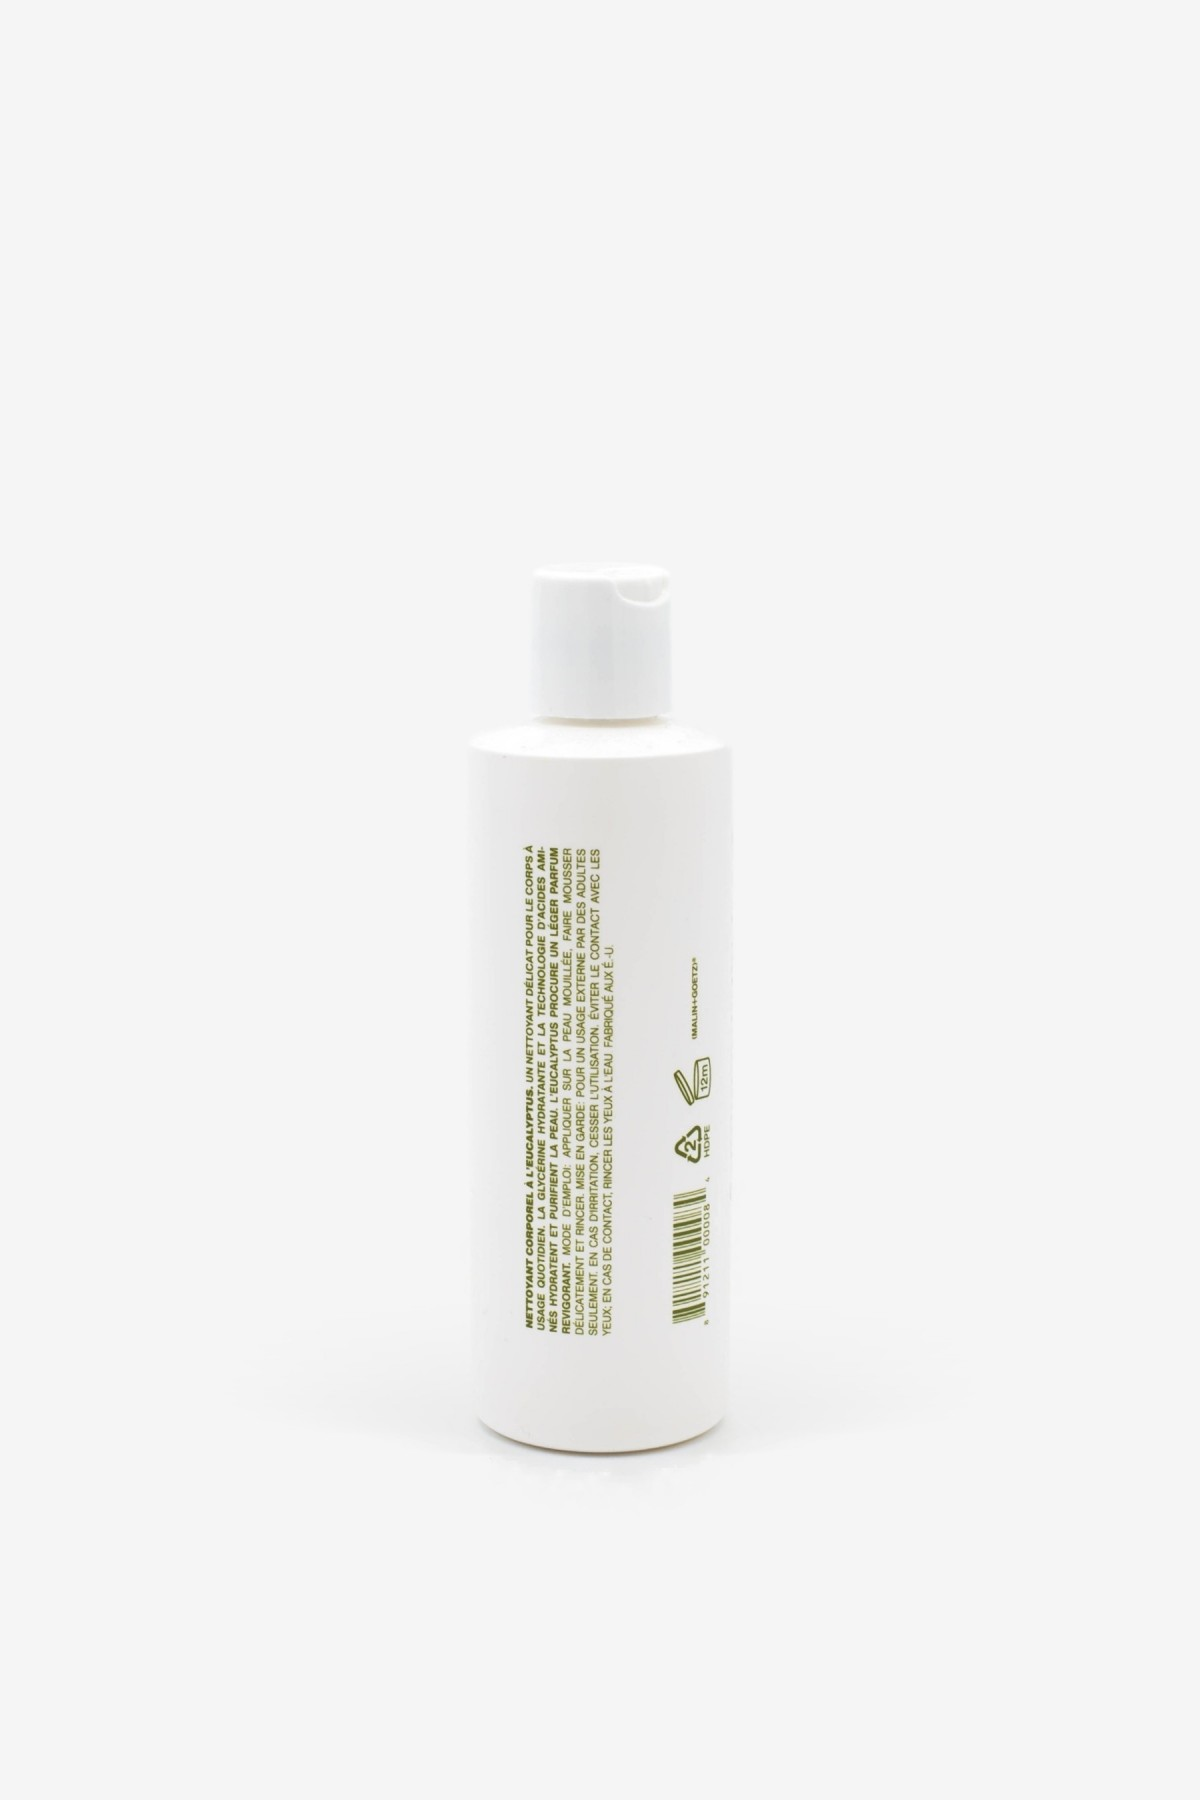 Malin+Goetz Eucalyptus Body Wash 250ml in